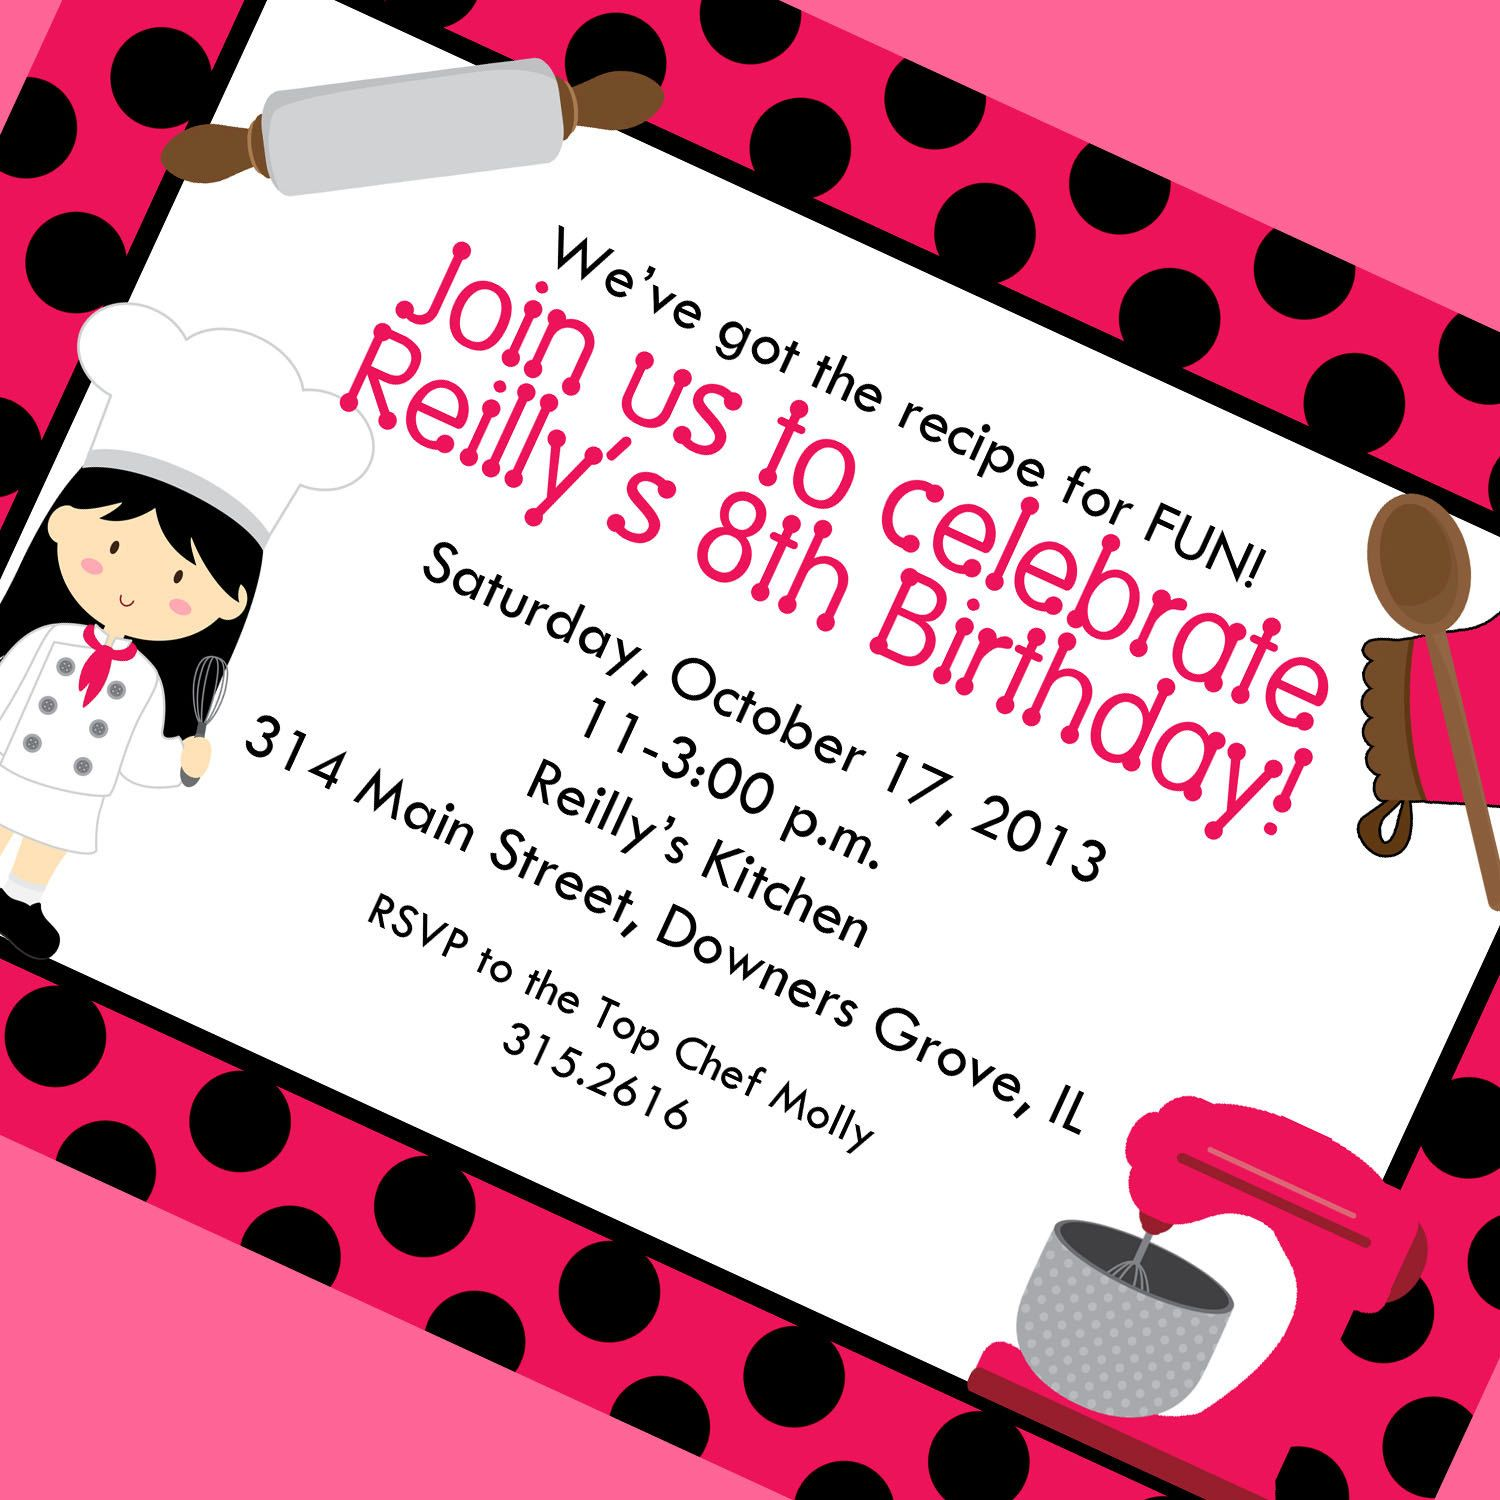 Top Chef Girl Cooking Party Invitation, Printable Invitation ...